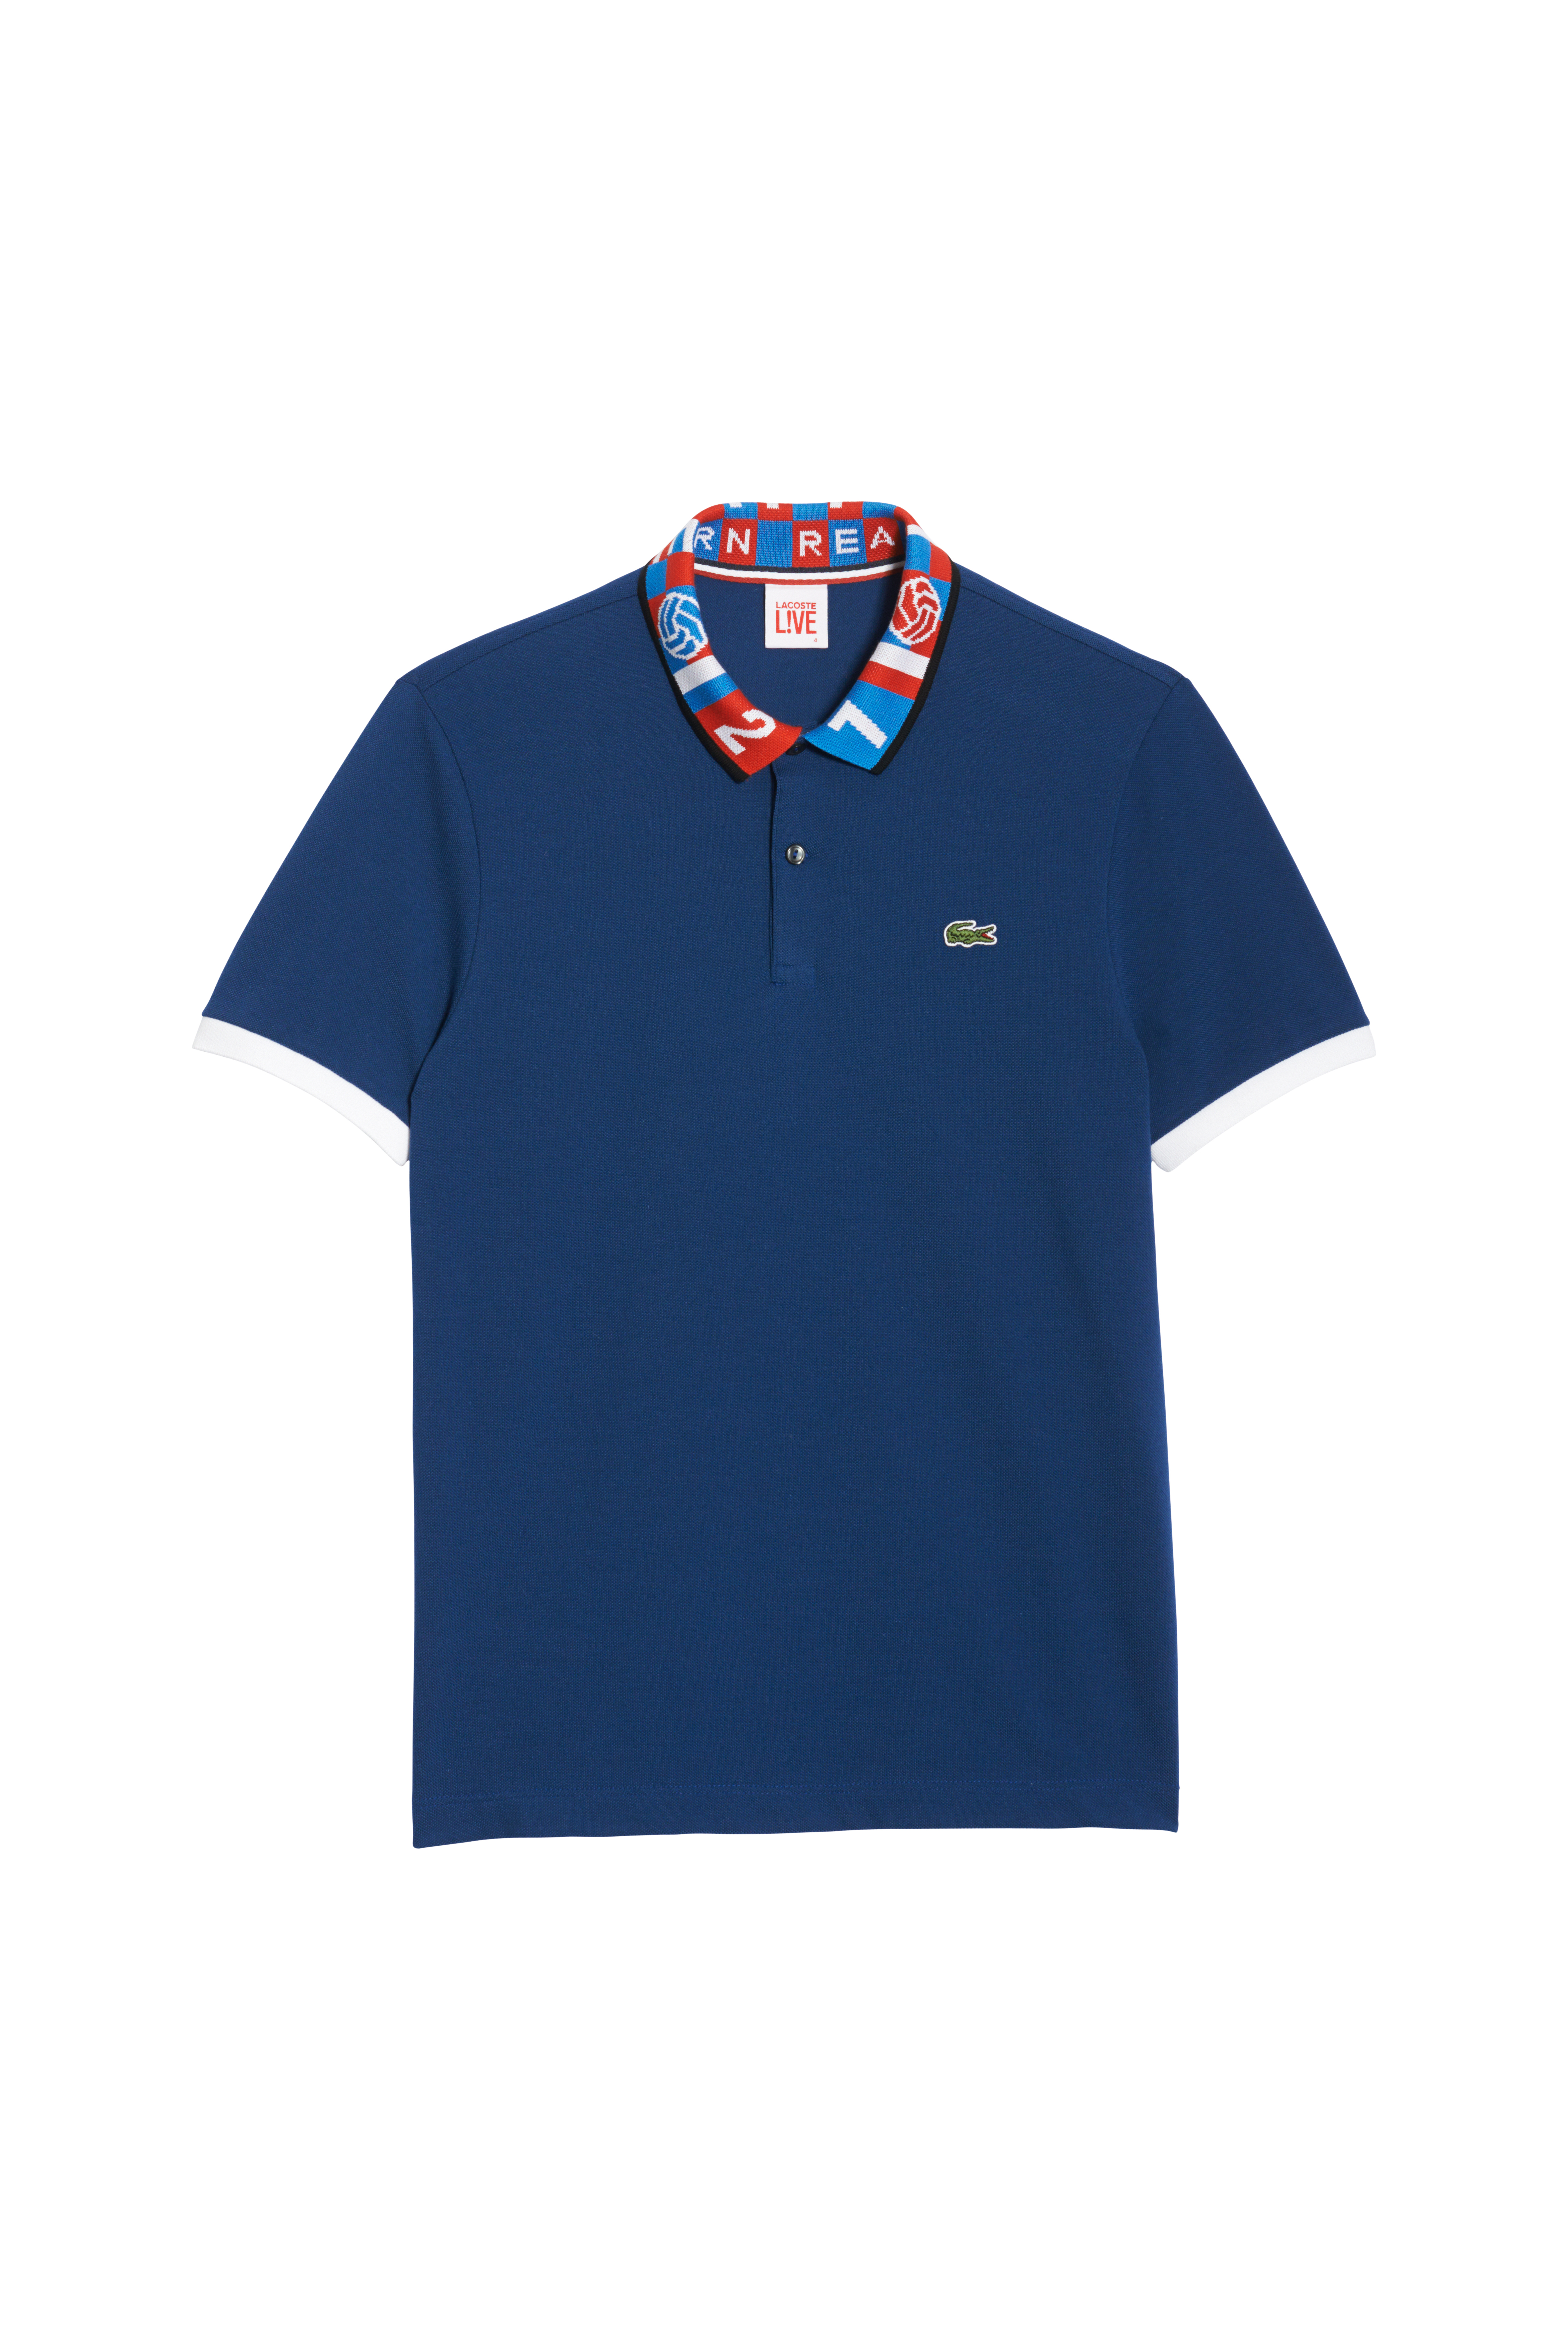 03_SS14_LACOSTE_LIVE_BY_SANGHON_KIM_-_Mens_Polo_Shirt_PH3845-OP